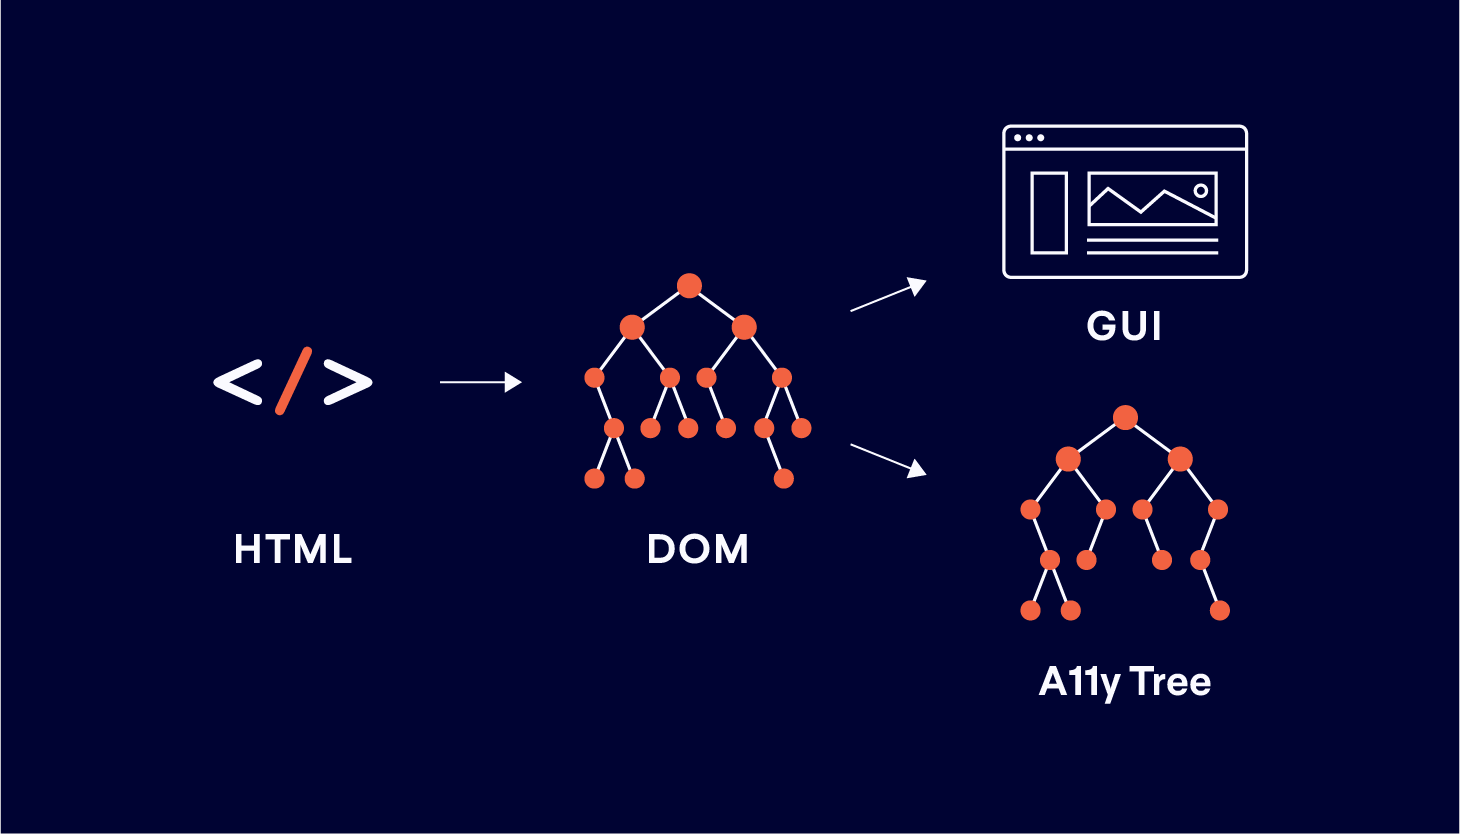 A diagram showing HTML code moving to the DOM, which then forks to produce the GUI and accessibility tree